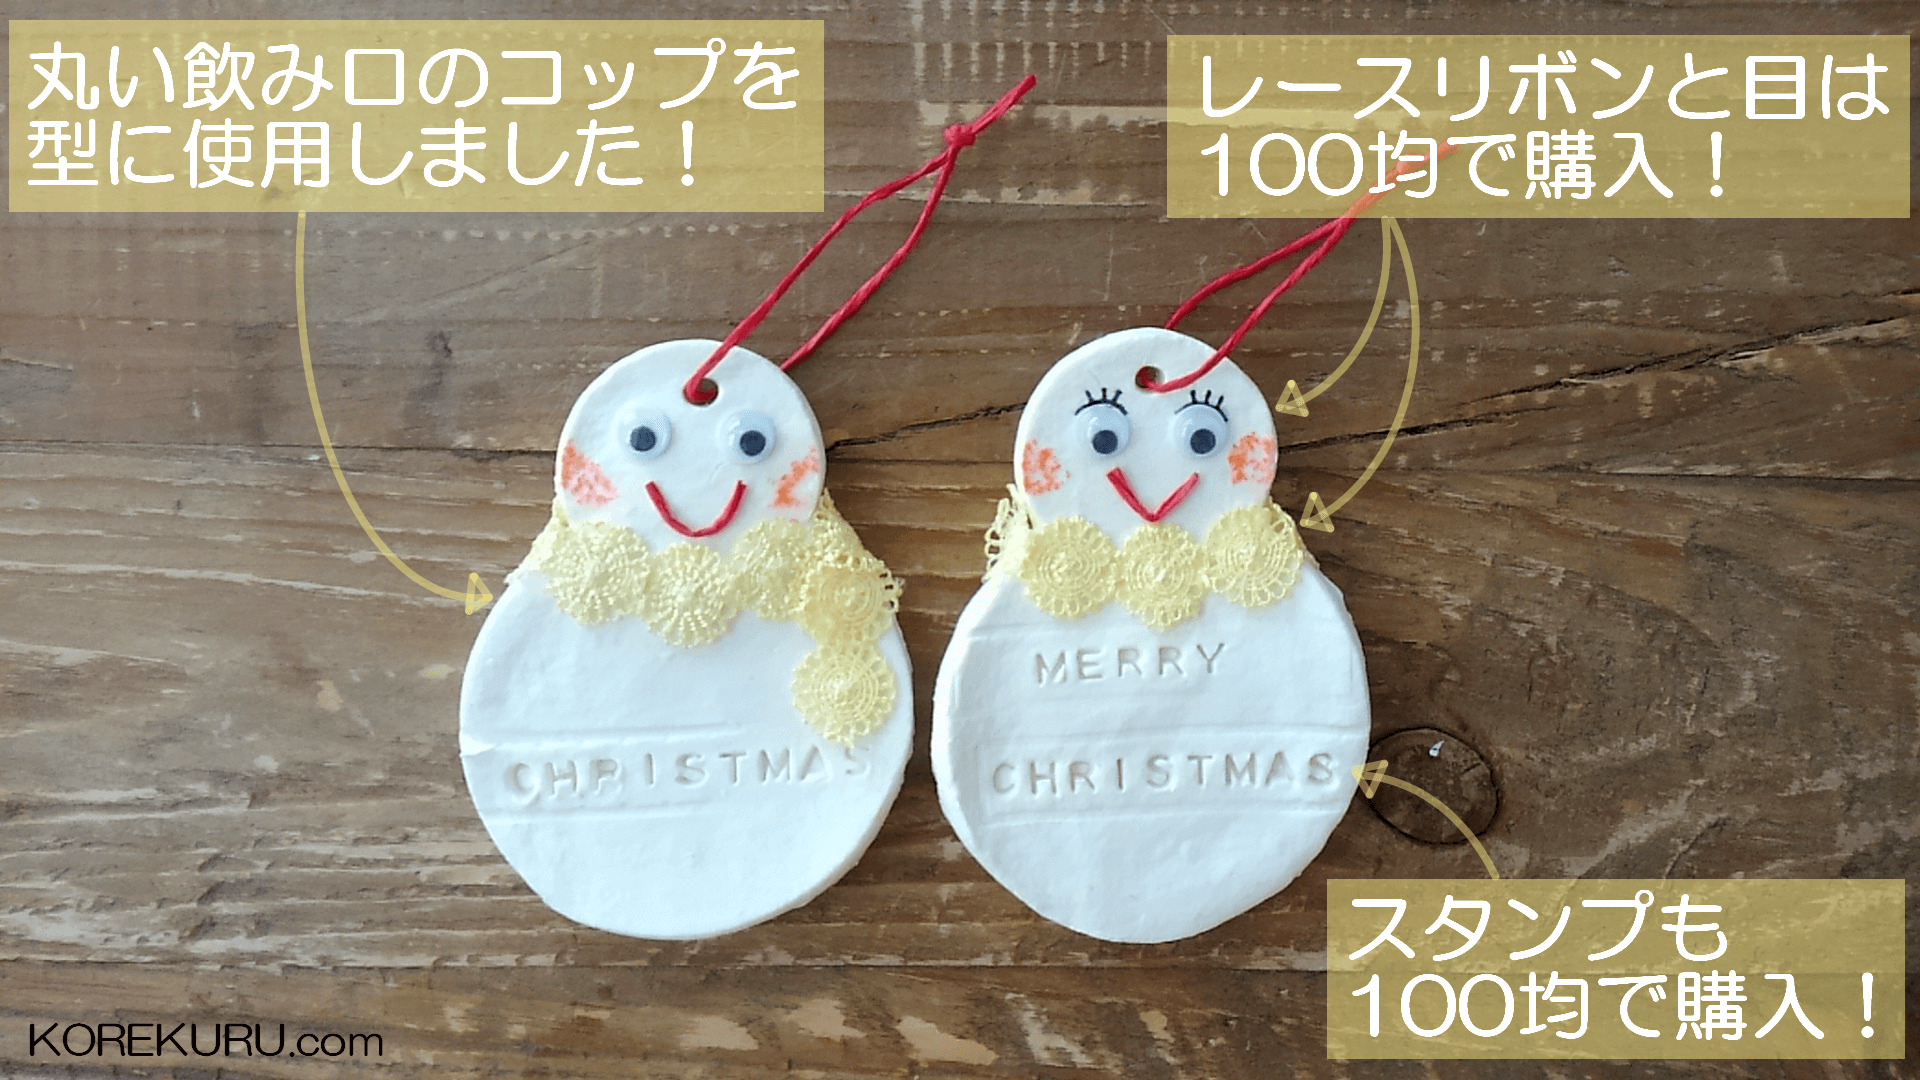 christmasornament%e3%80%807%e6%94%b9